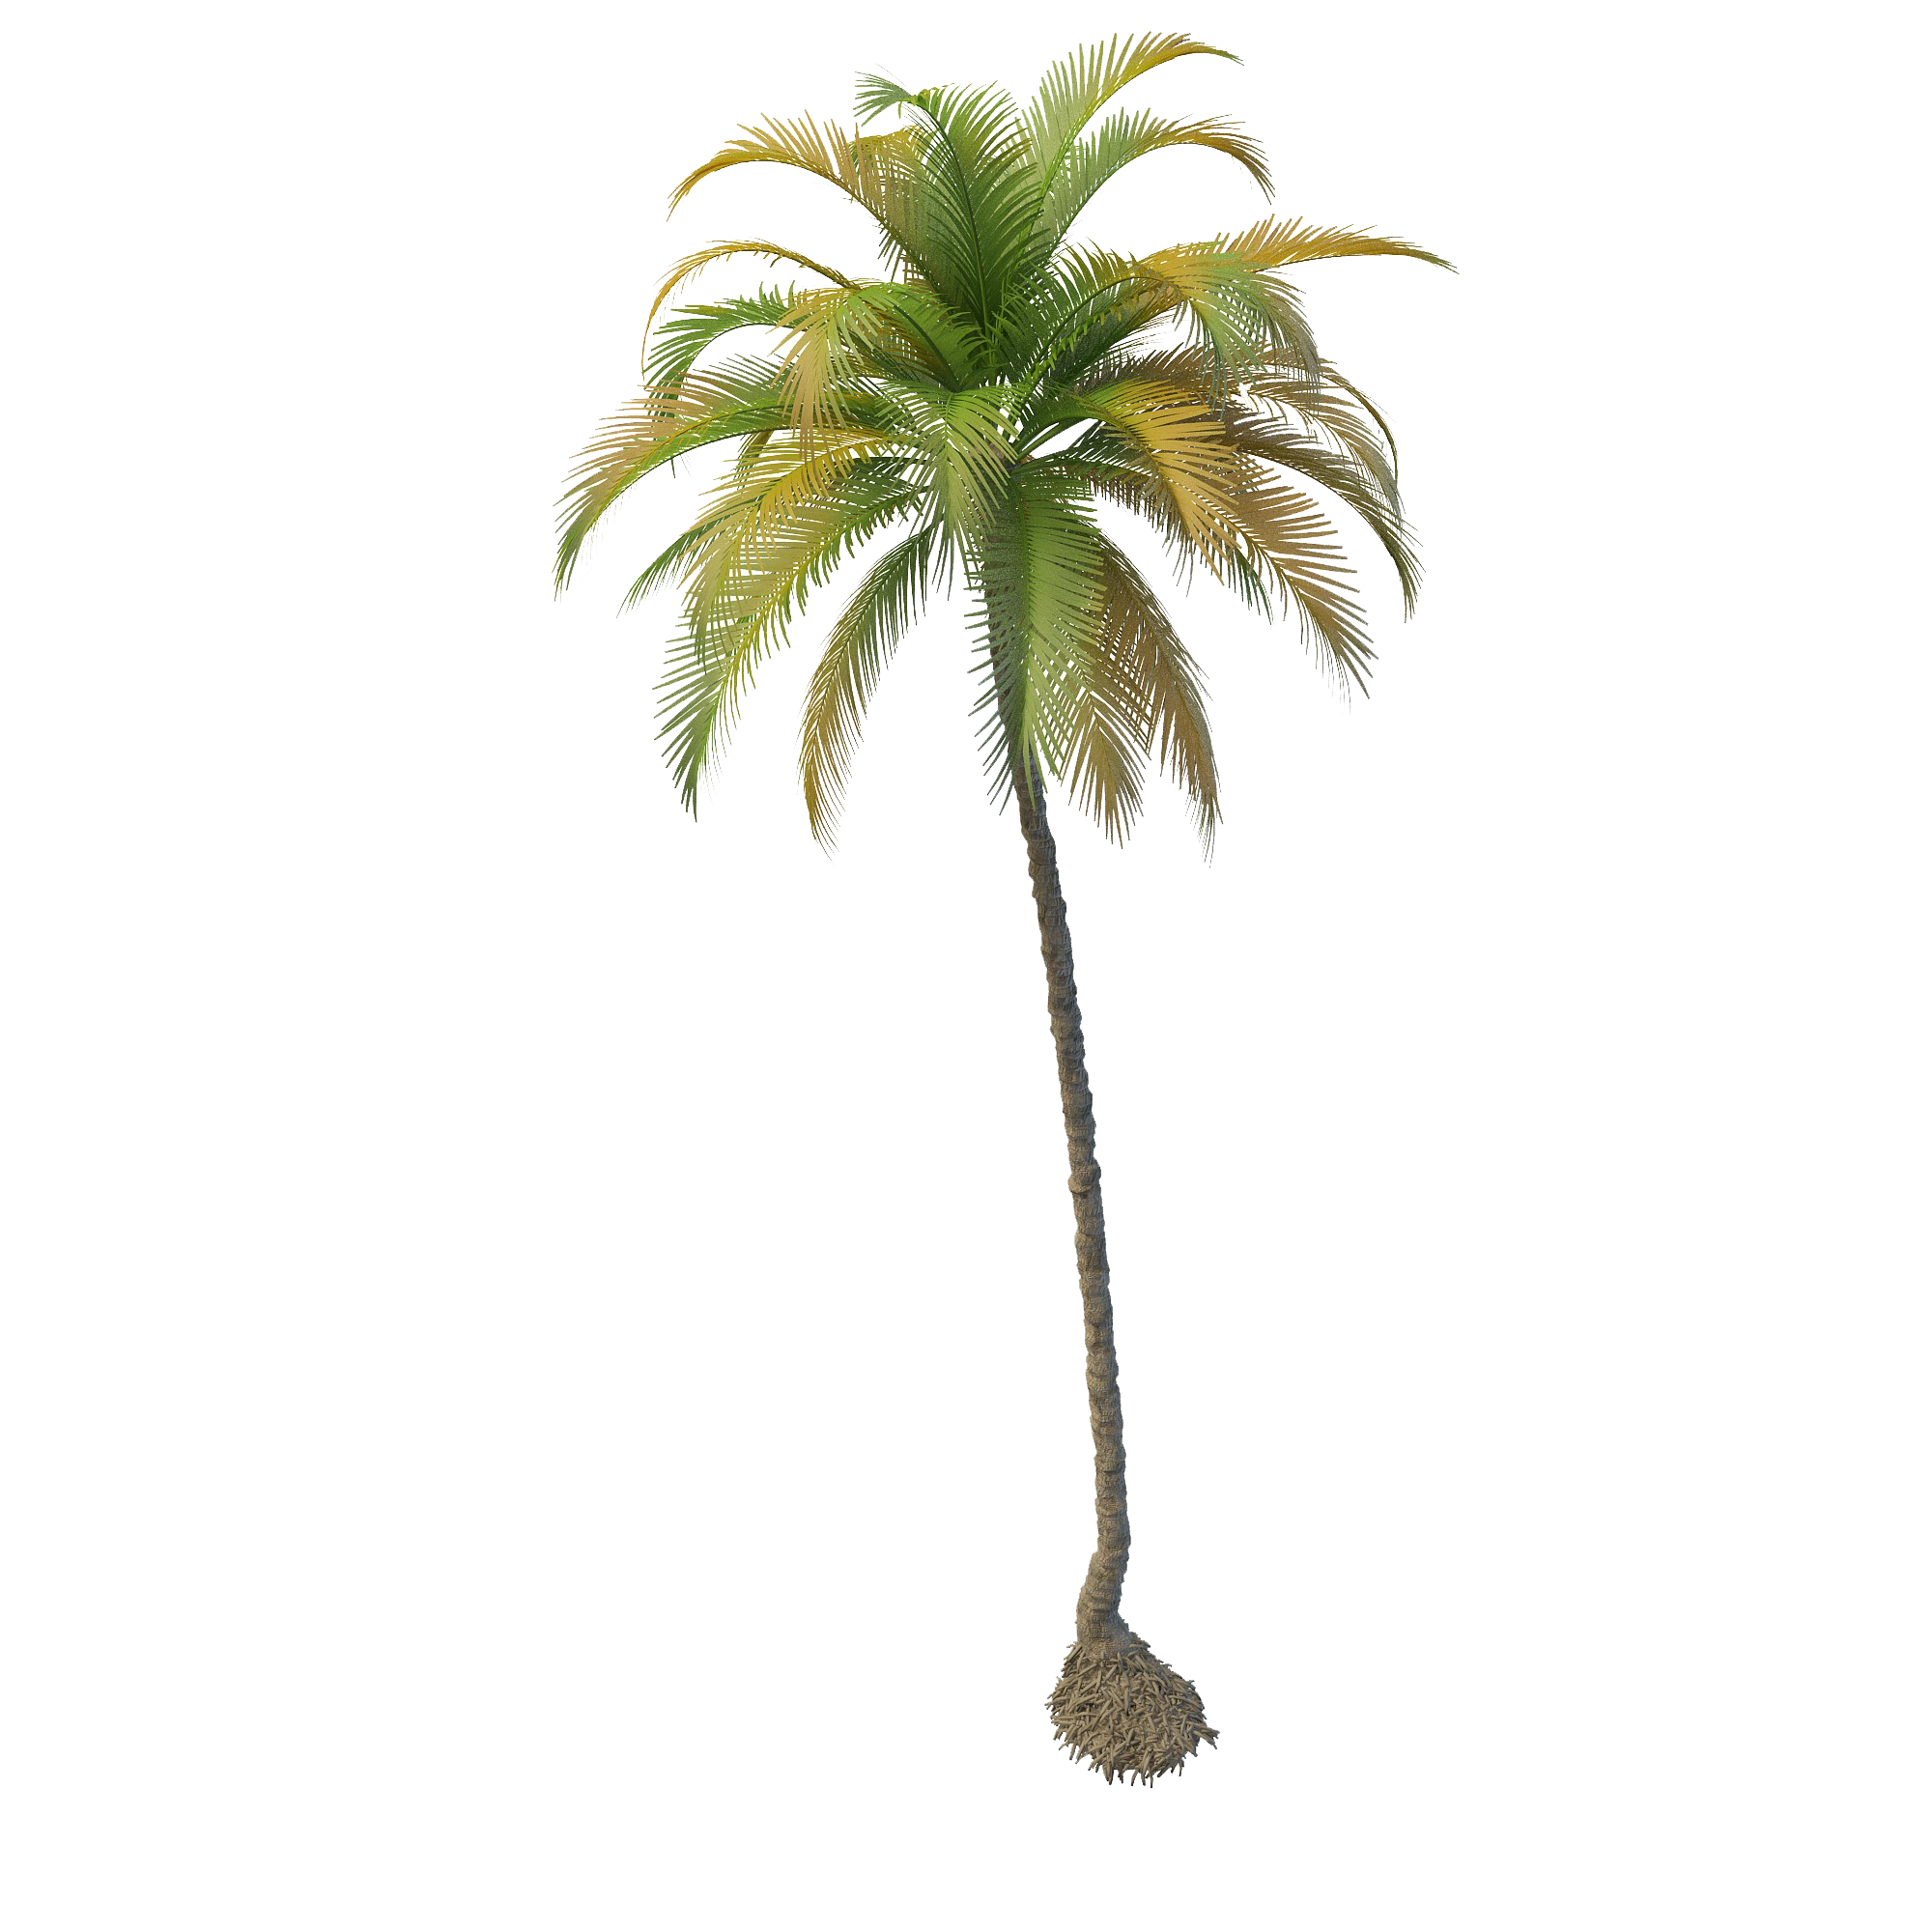 Coconut tree png. Images transparent free download